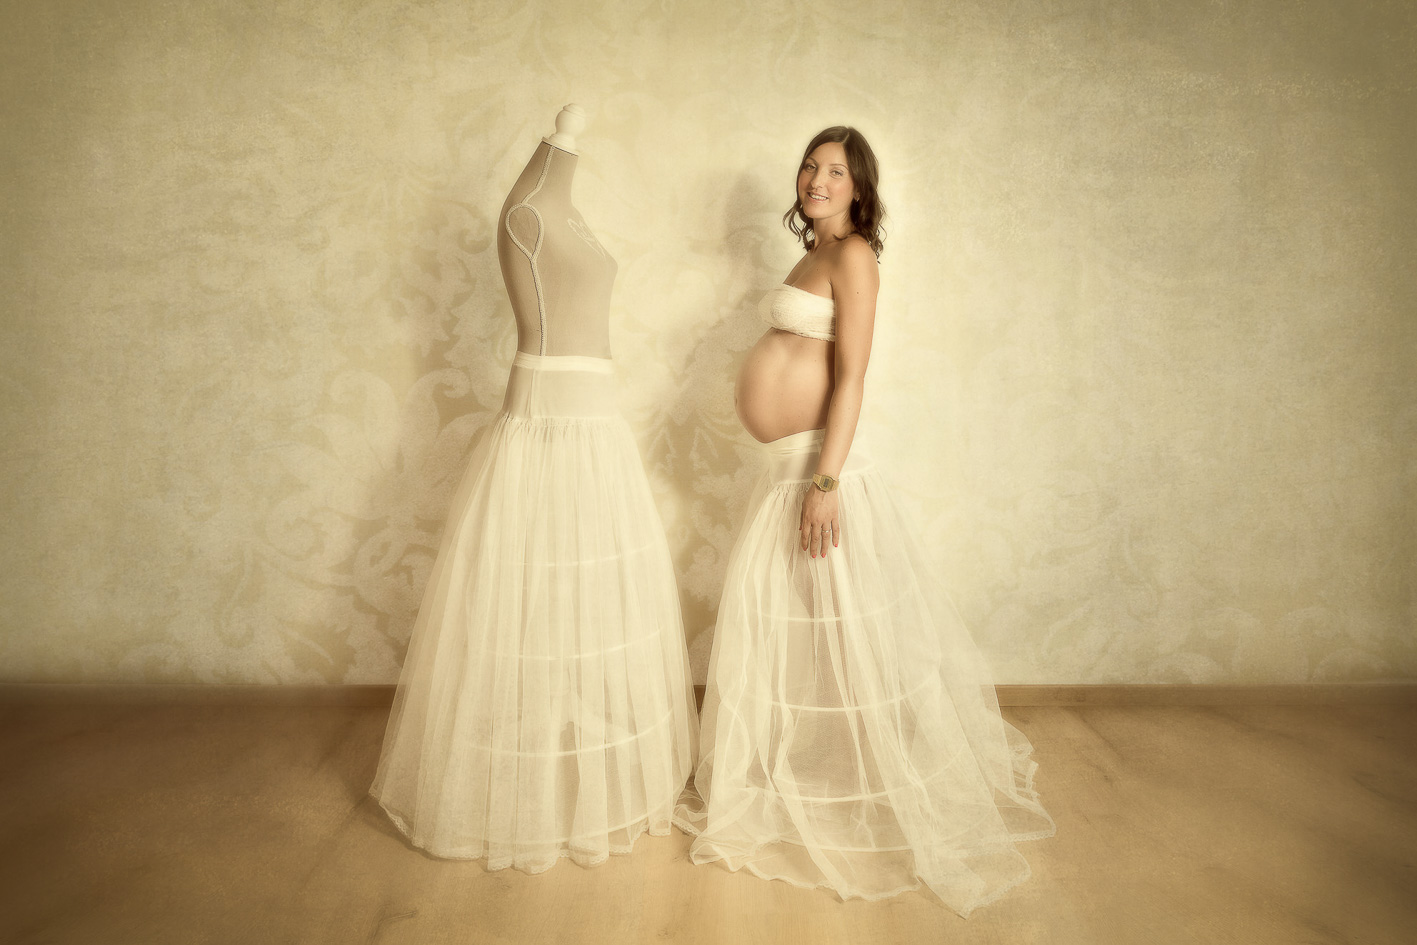 foto-maternity-tagg-photography-39